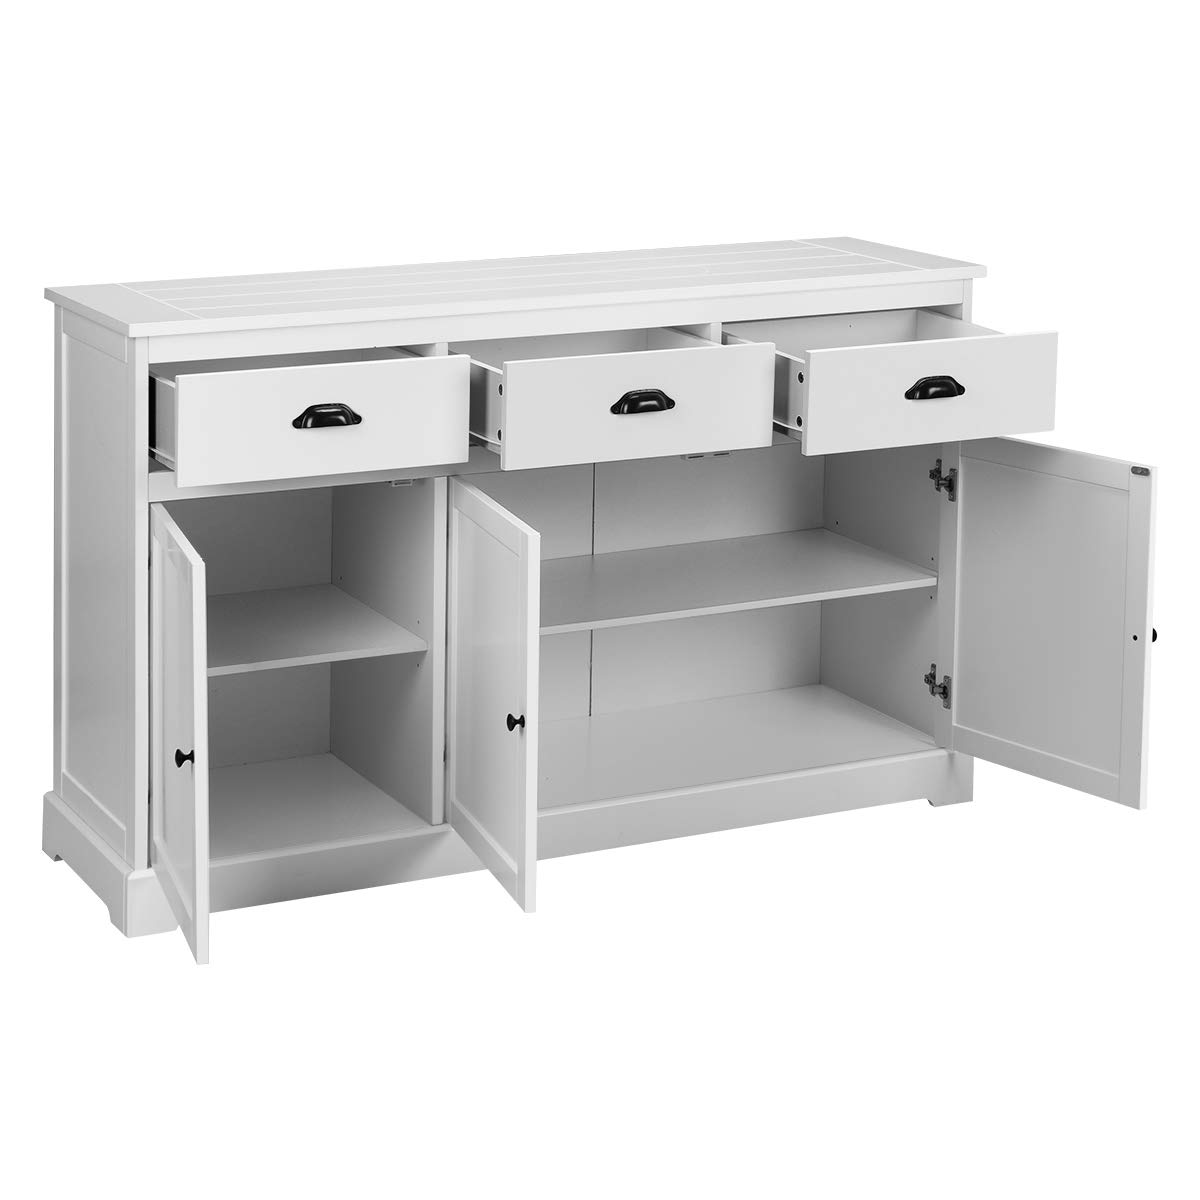 Giantex Sideboard Buffet Server Storage Cabinet Console Table Home Kitchen Dining Room Furniture Entryway Cupboard with 2 Cabinets and 3 Drawers Adjustable Shelves, White (White) by Giantex (Image #9)